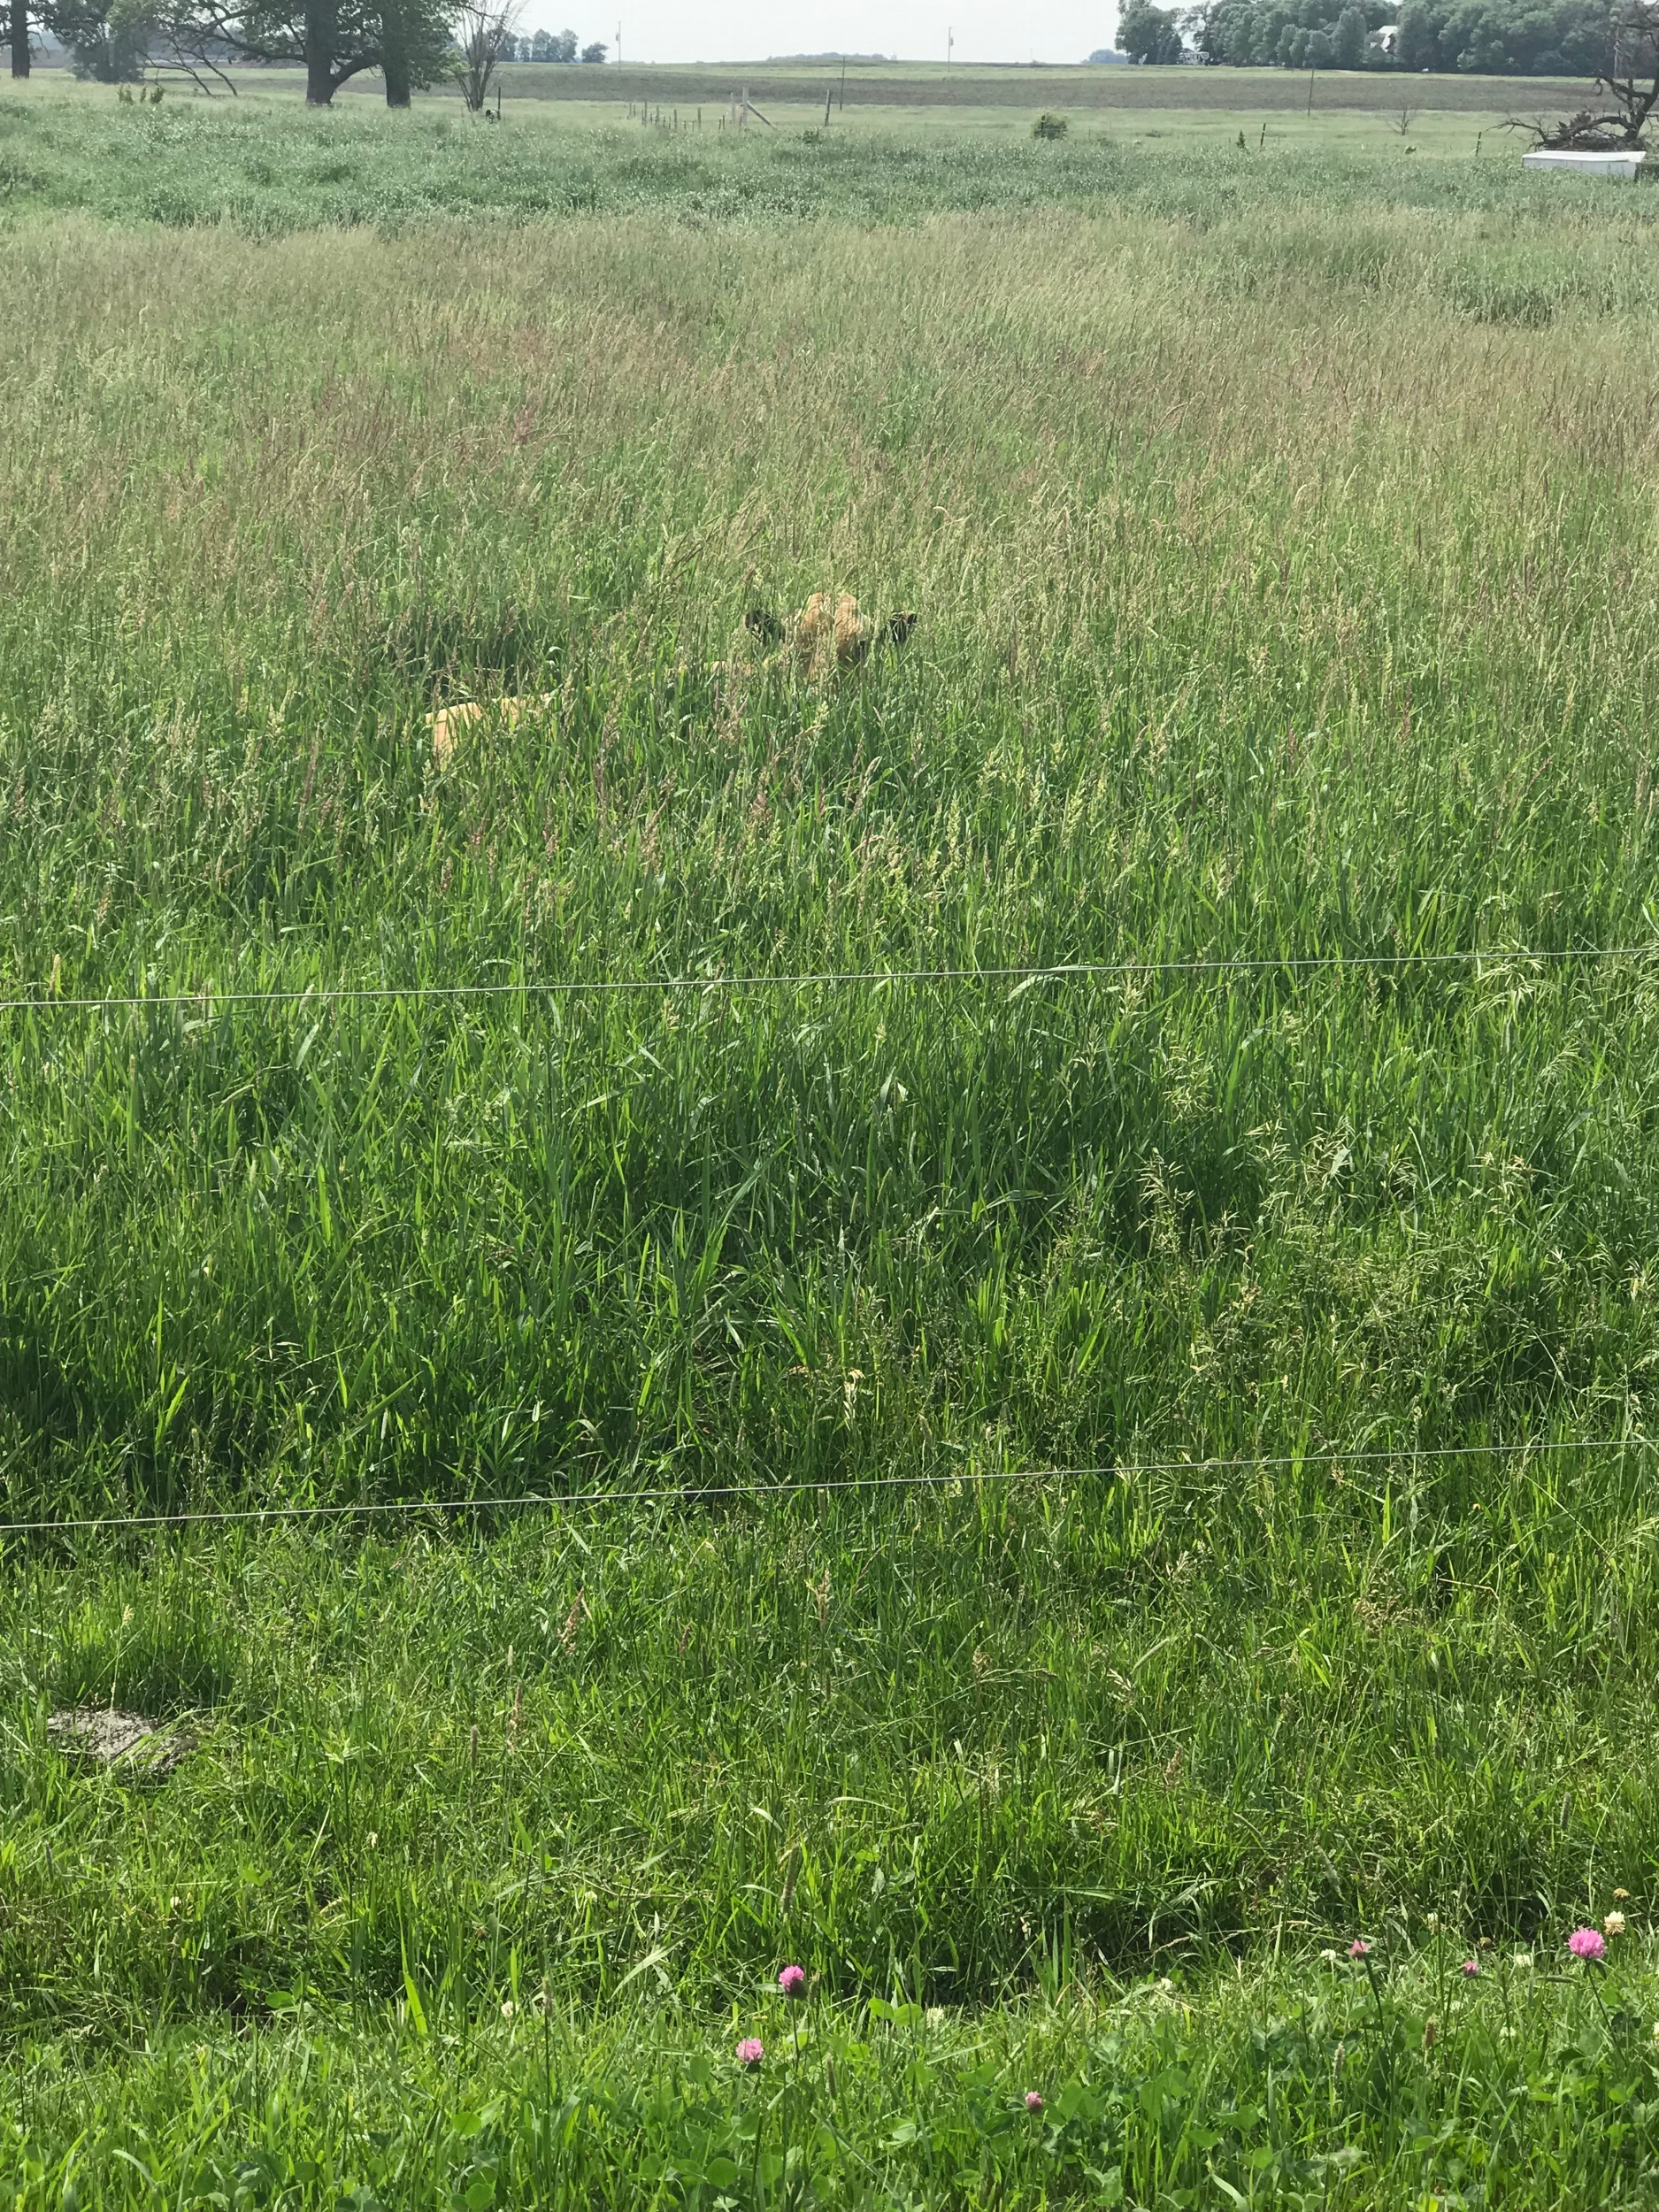 Can you see Shiloh in the tall grass?